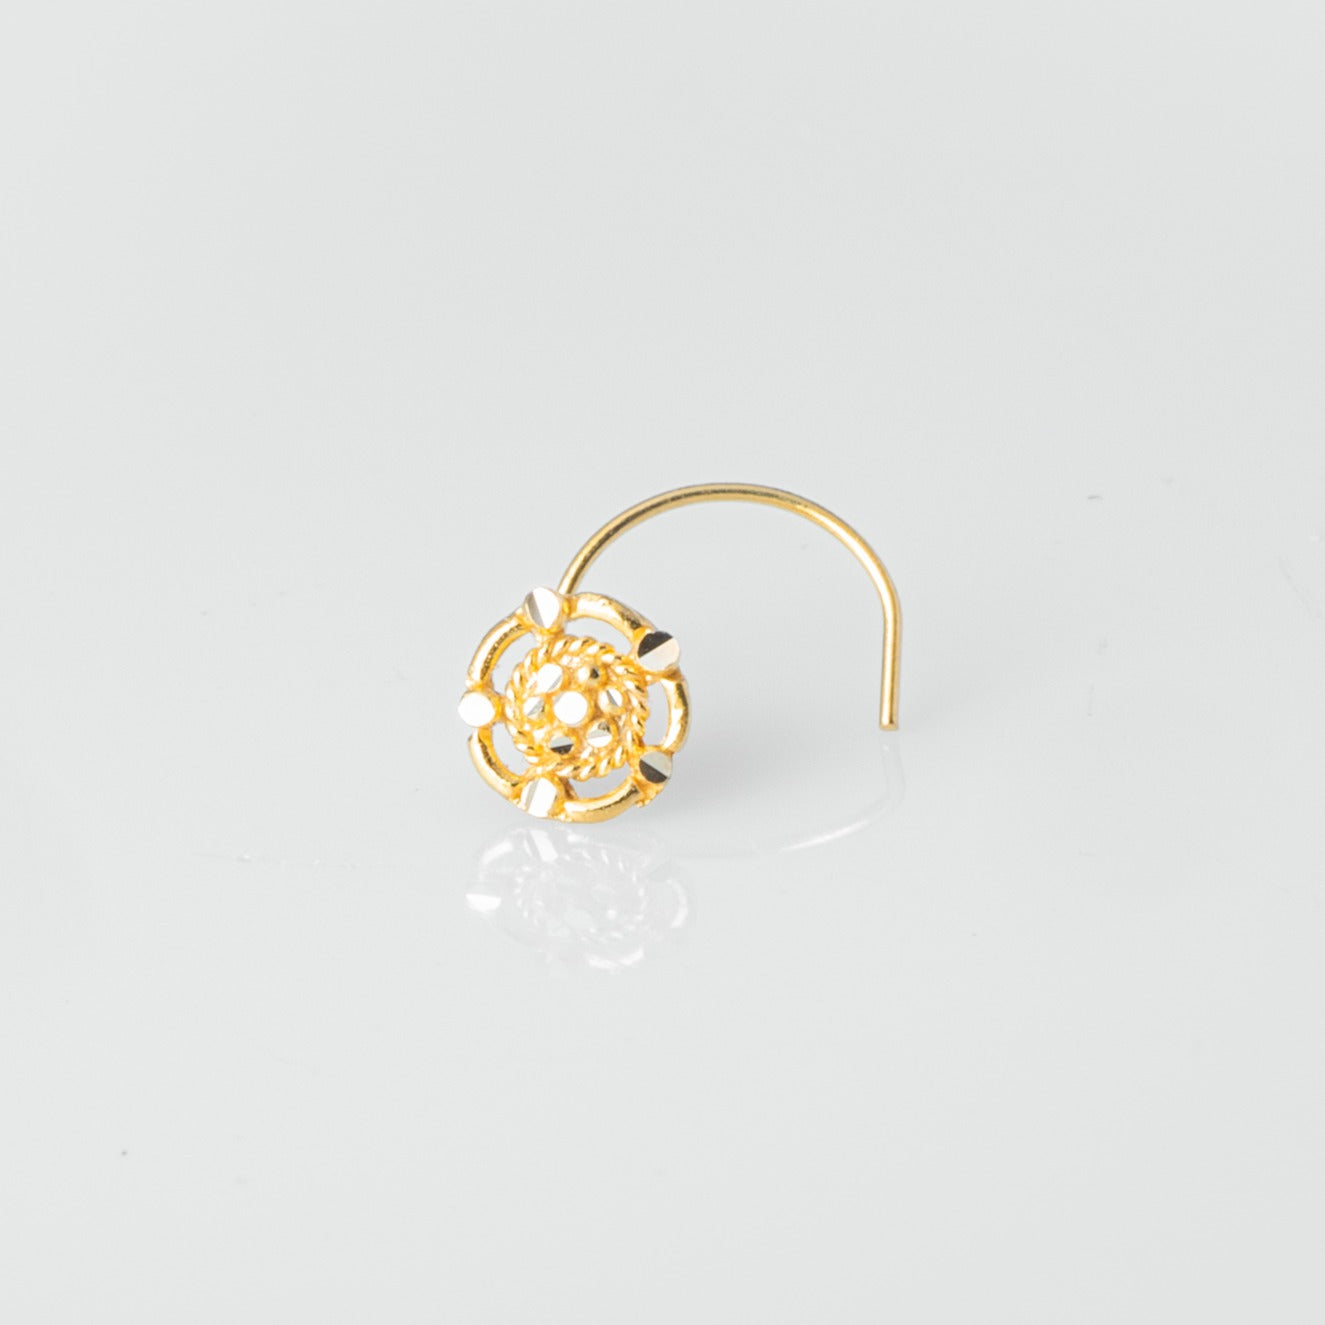 18ct Yellow Gold Wire Coil Back Nose Stud with Filigree Design NIP-5-130a